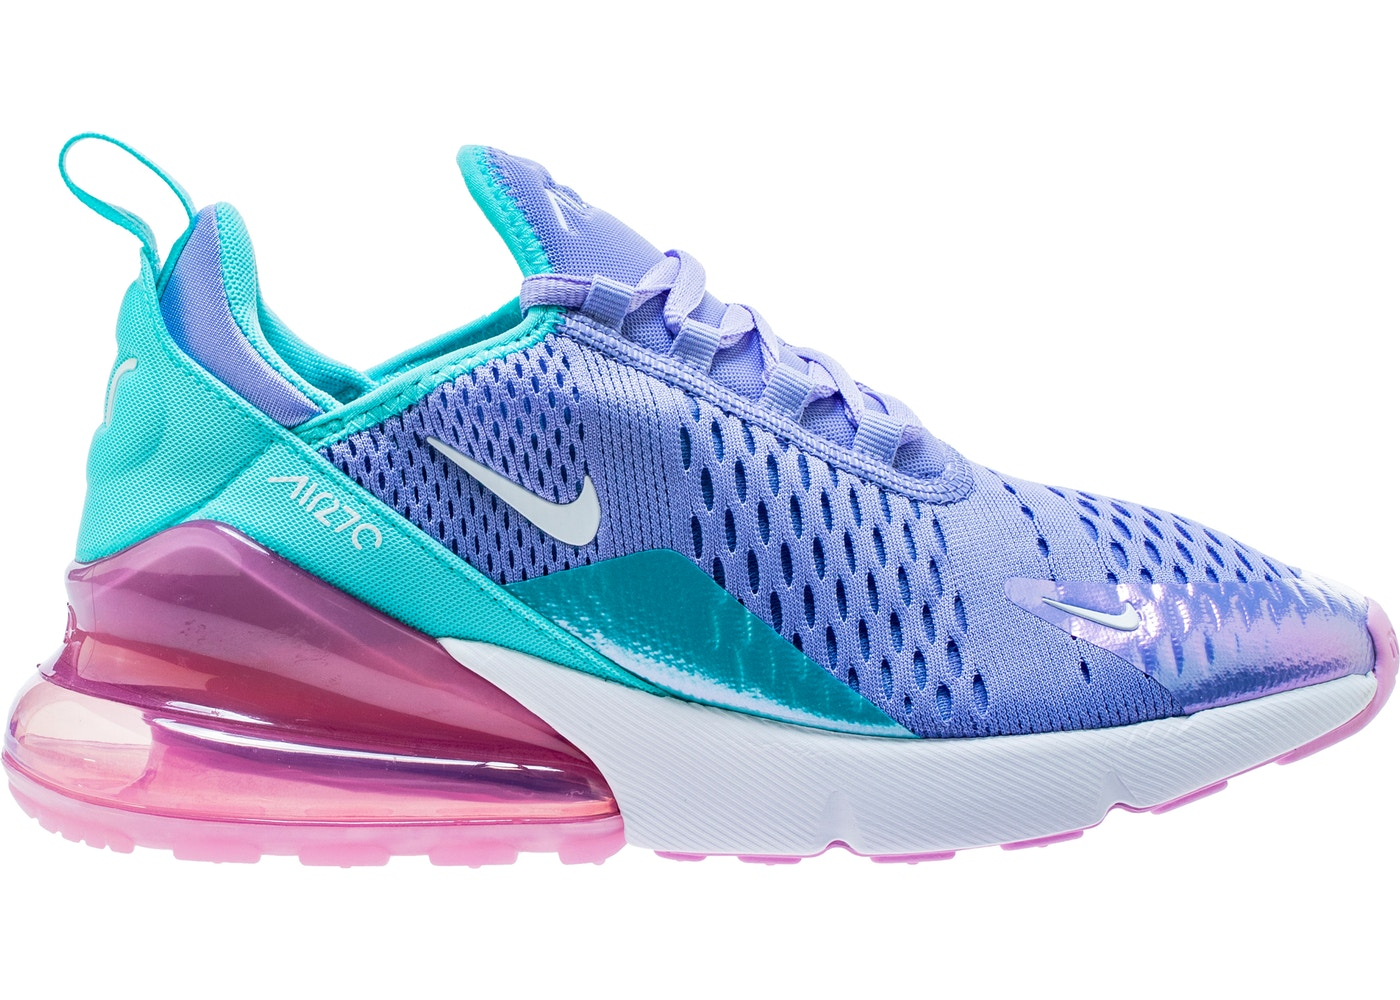 0b1f4a5b52 Air Max 270 Twilight Pulse Light Aqua (GS) - BV1236-400